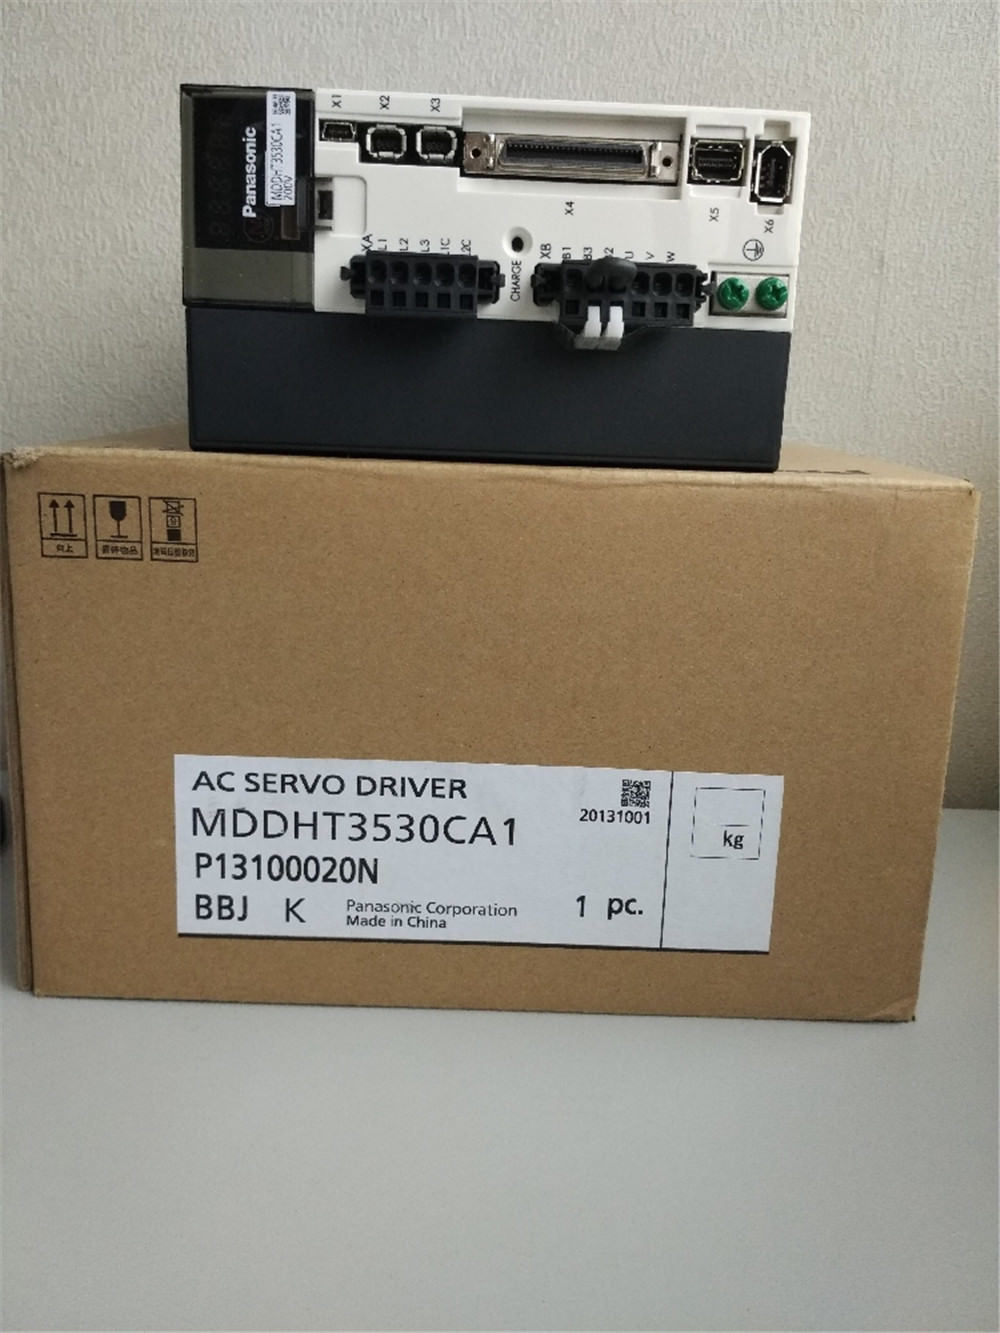 NEW PANASONIC Servo drive MDDHT3530CA1 in box